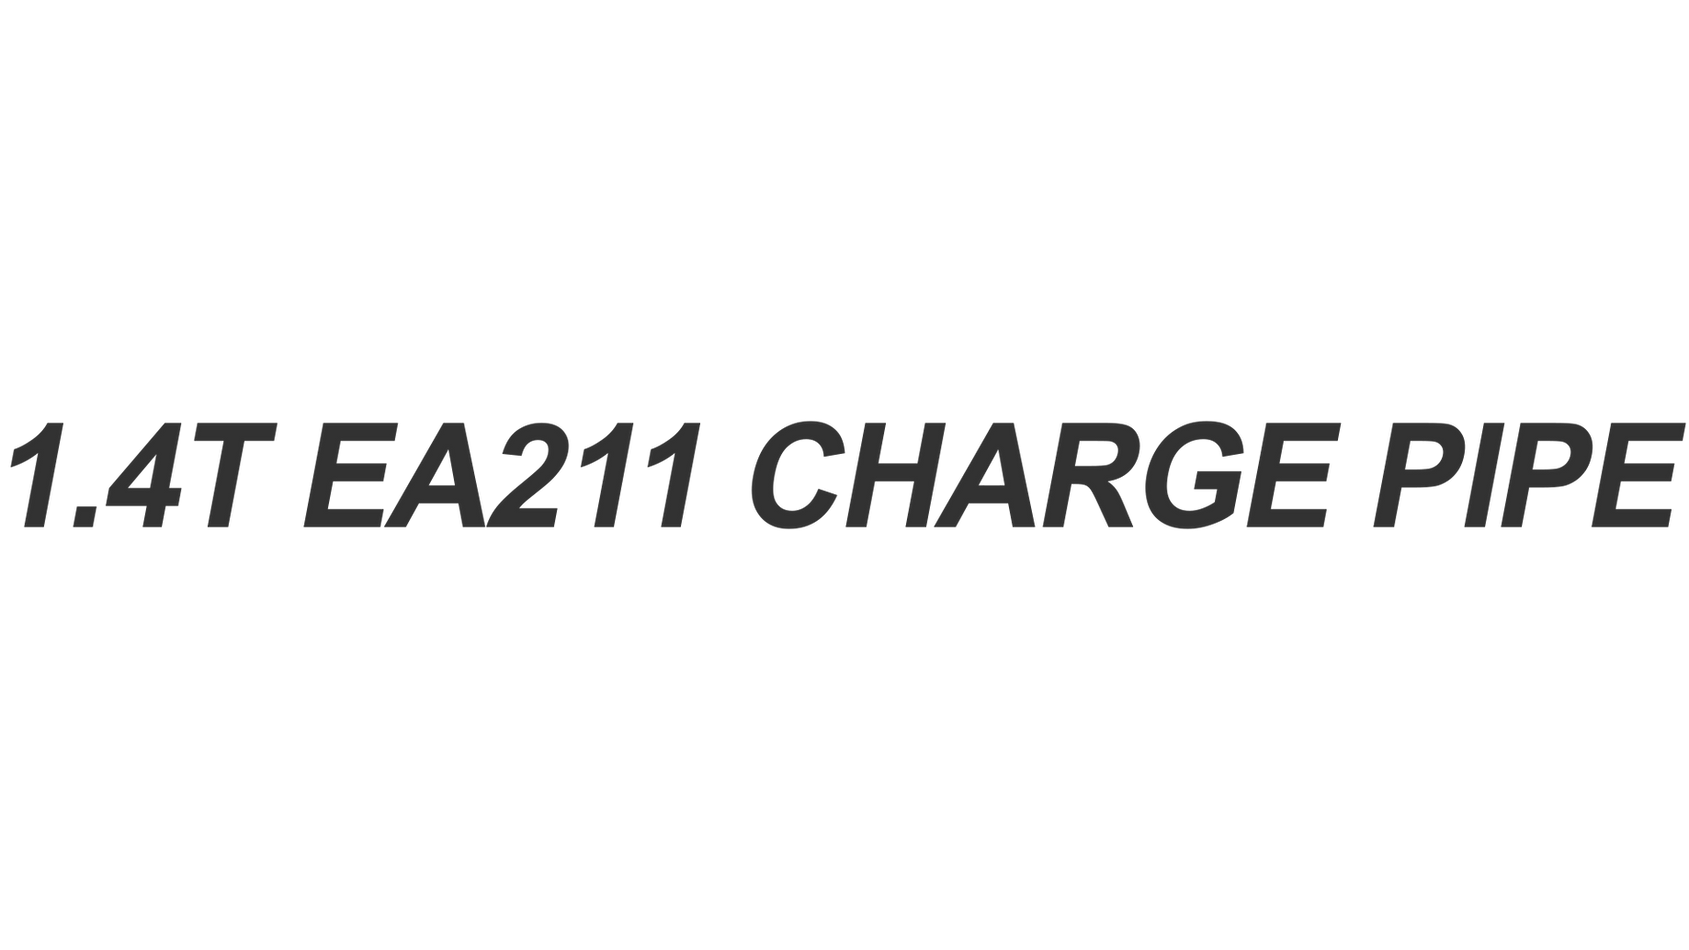 EA211 Charge Pipe-02.png